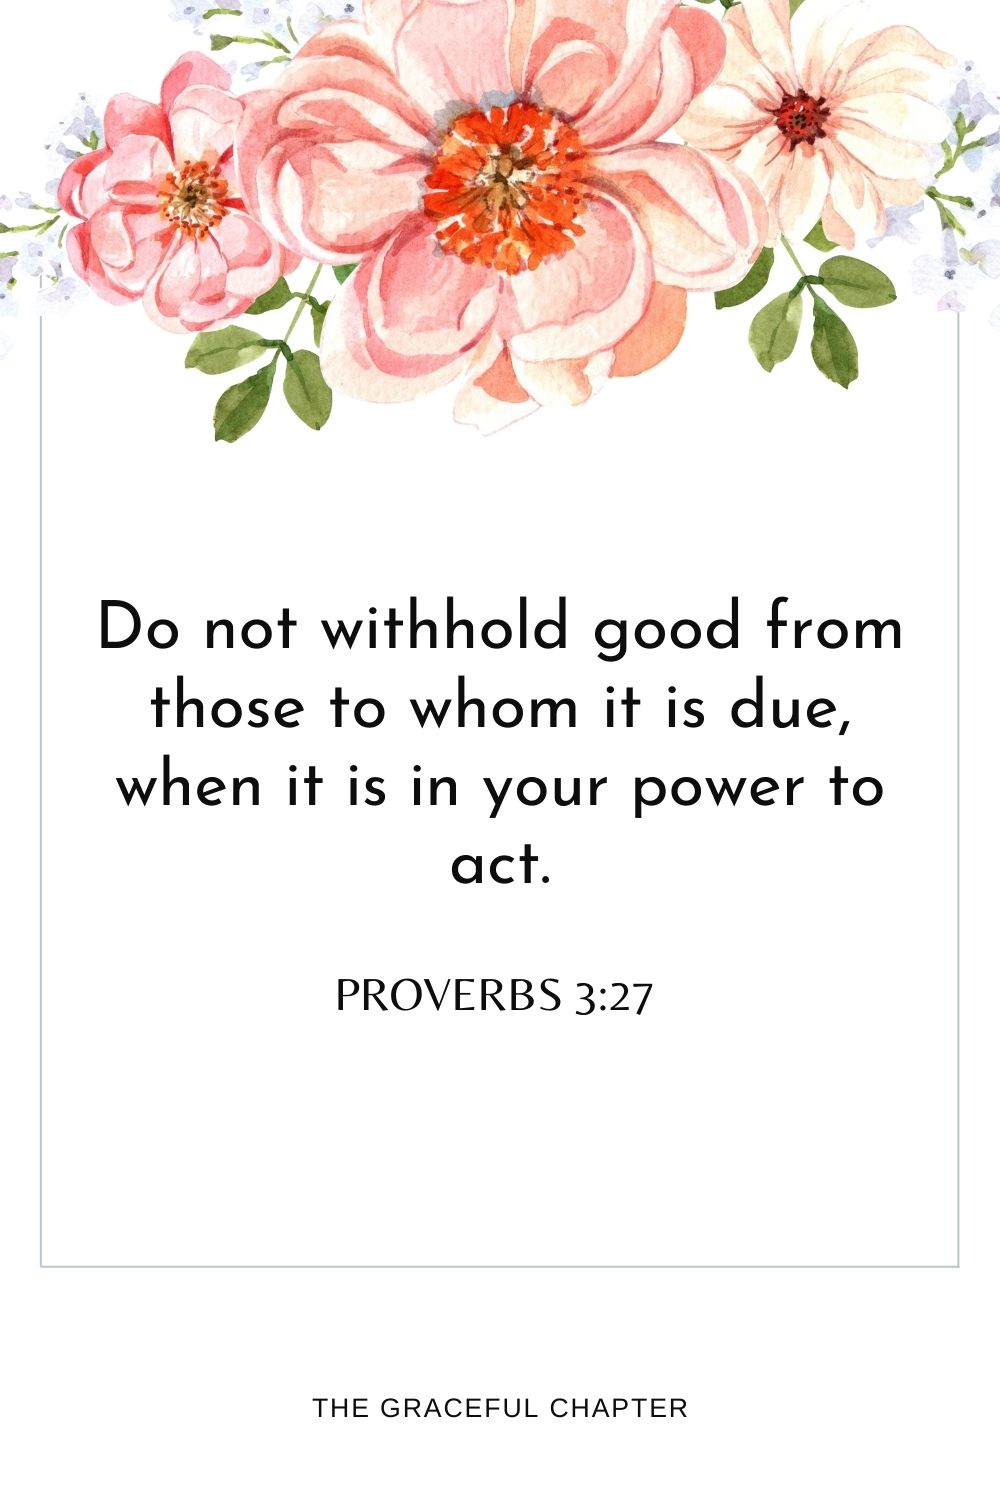 Do not withhold good from those to whom it is due, when it is in your power to act. Proverbs 3:27